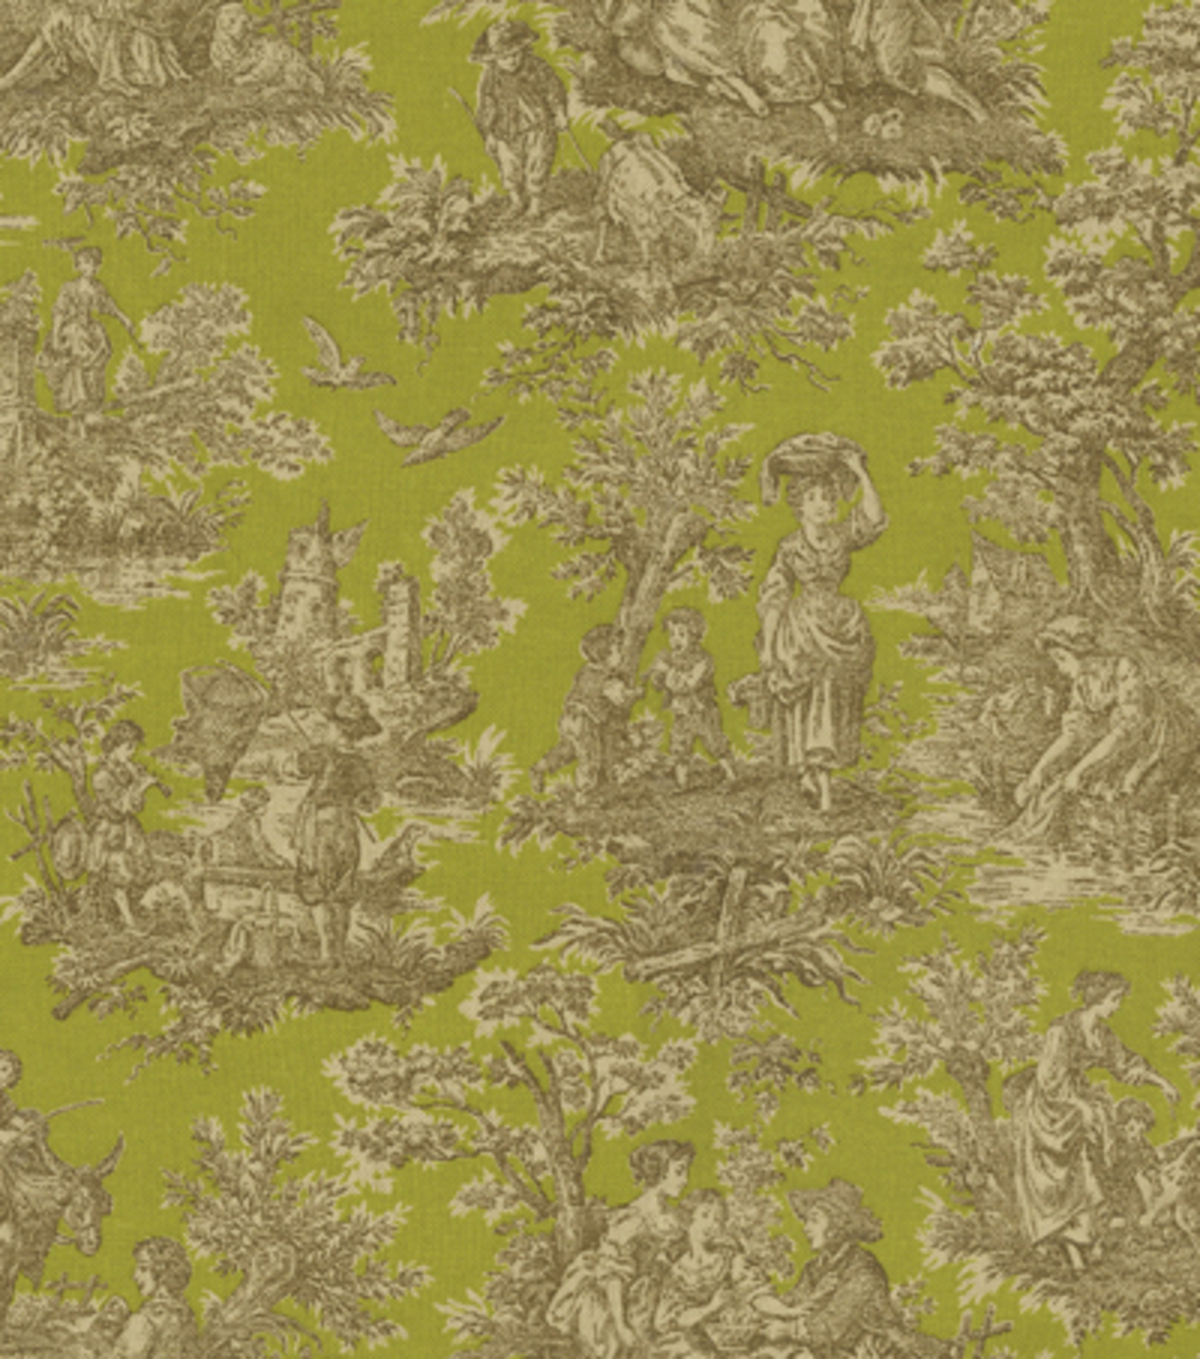 Home Decor 8\u0022x8\u0022 Fabric Swatch-Waverly Artisanal Toile/Crme de Menthe